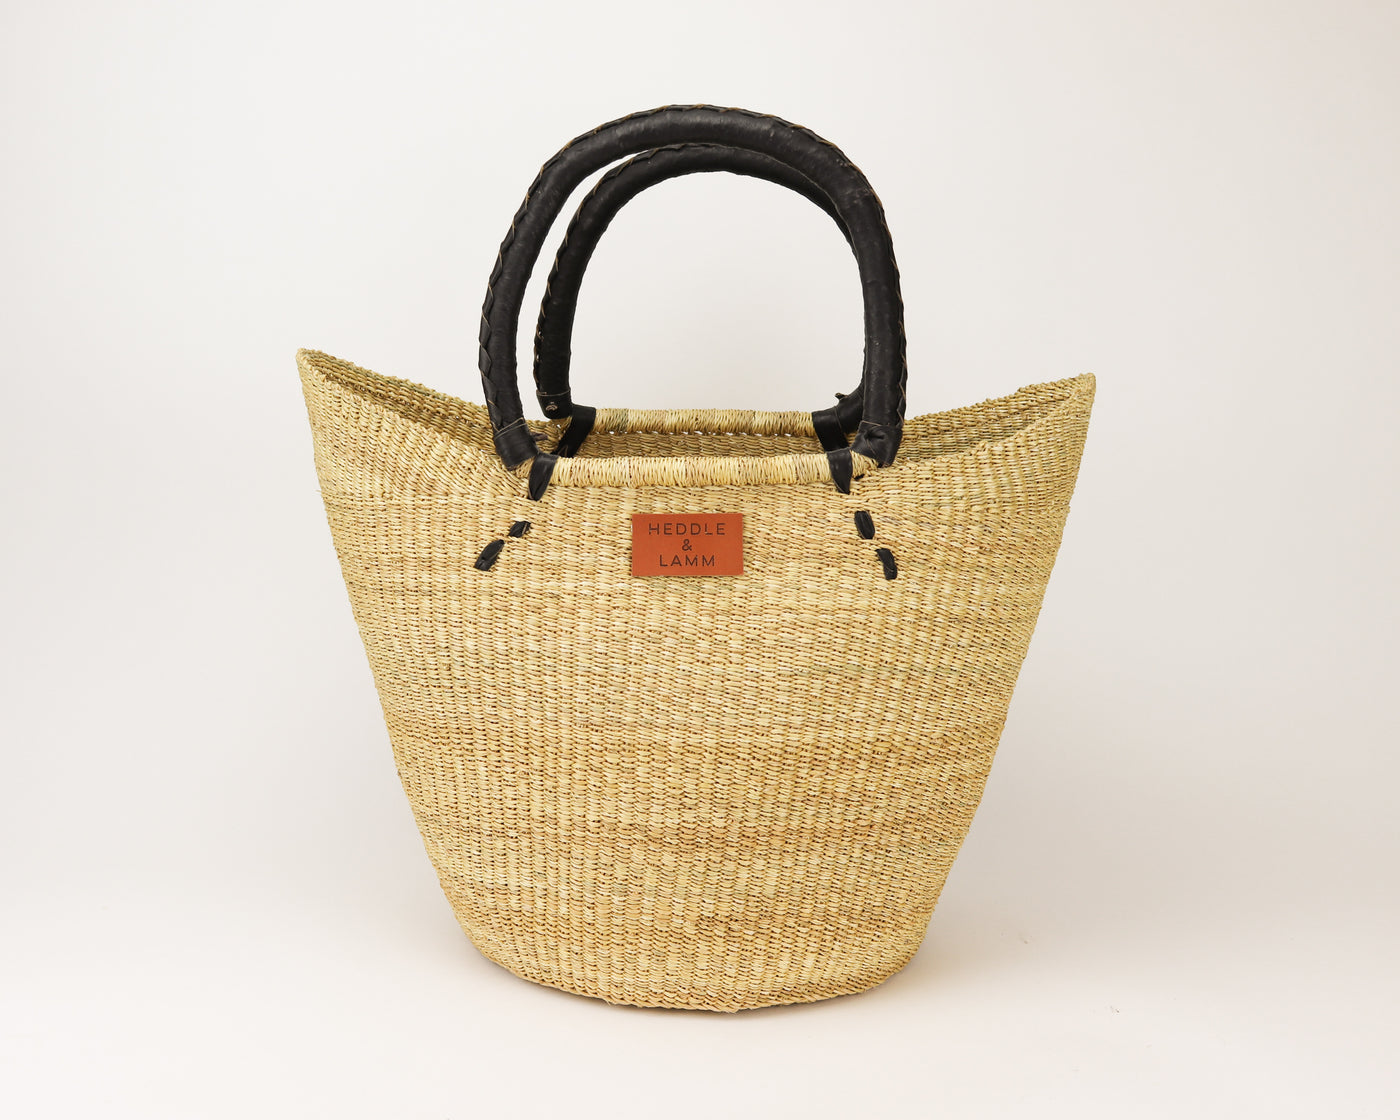 Kandiga Shopper - Black Handle